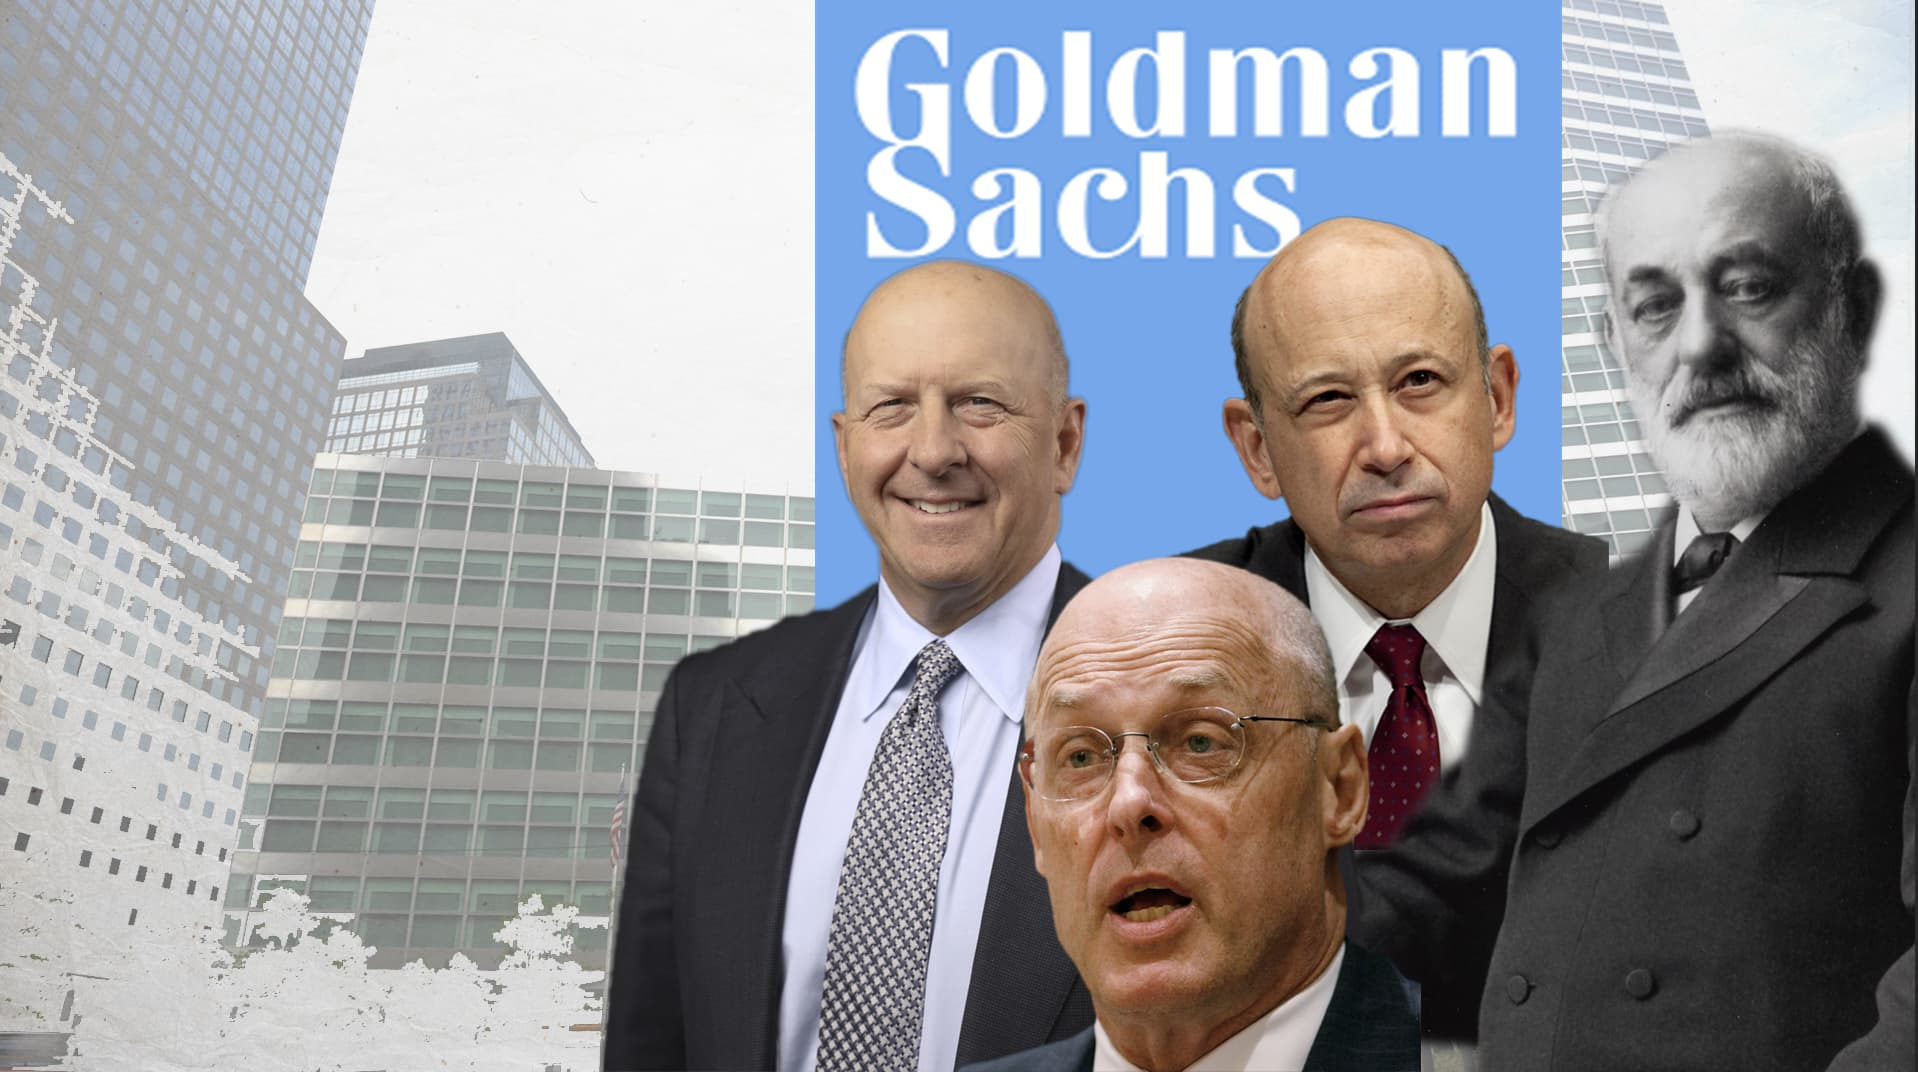 Goldman agrees to pay more than $2.9 billion to resolve 1MDB probes